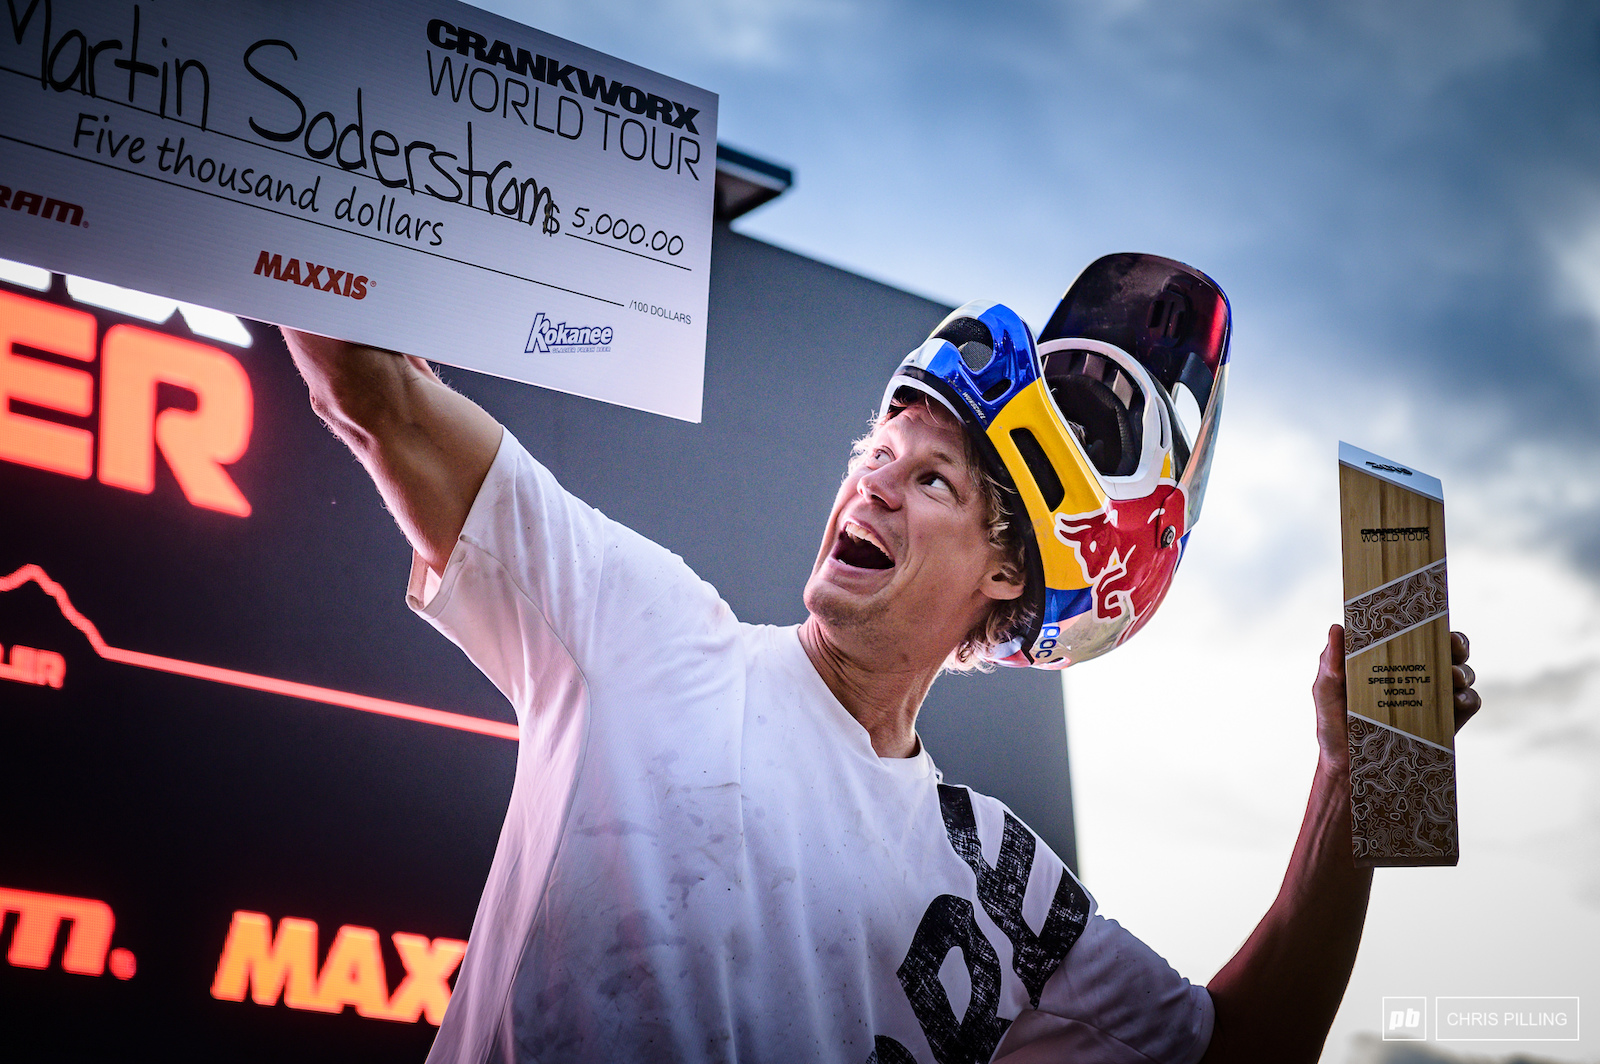 Martin Soderstrom takes the Speed and Style World Championship